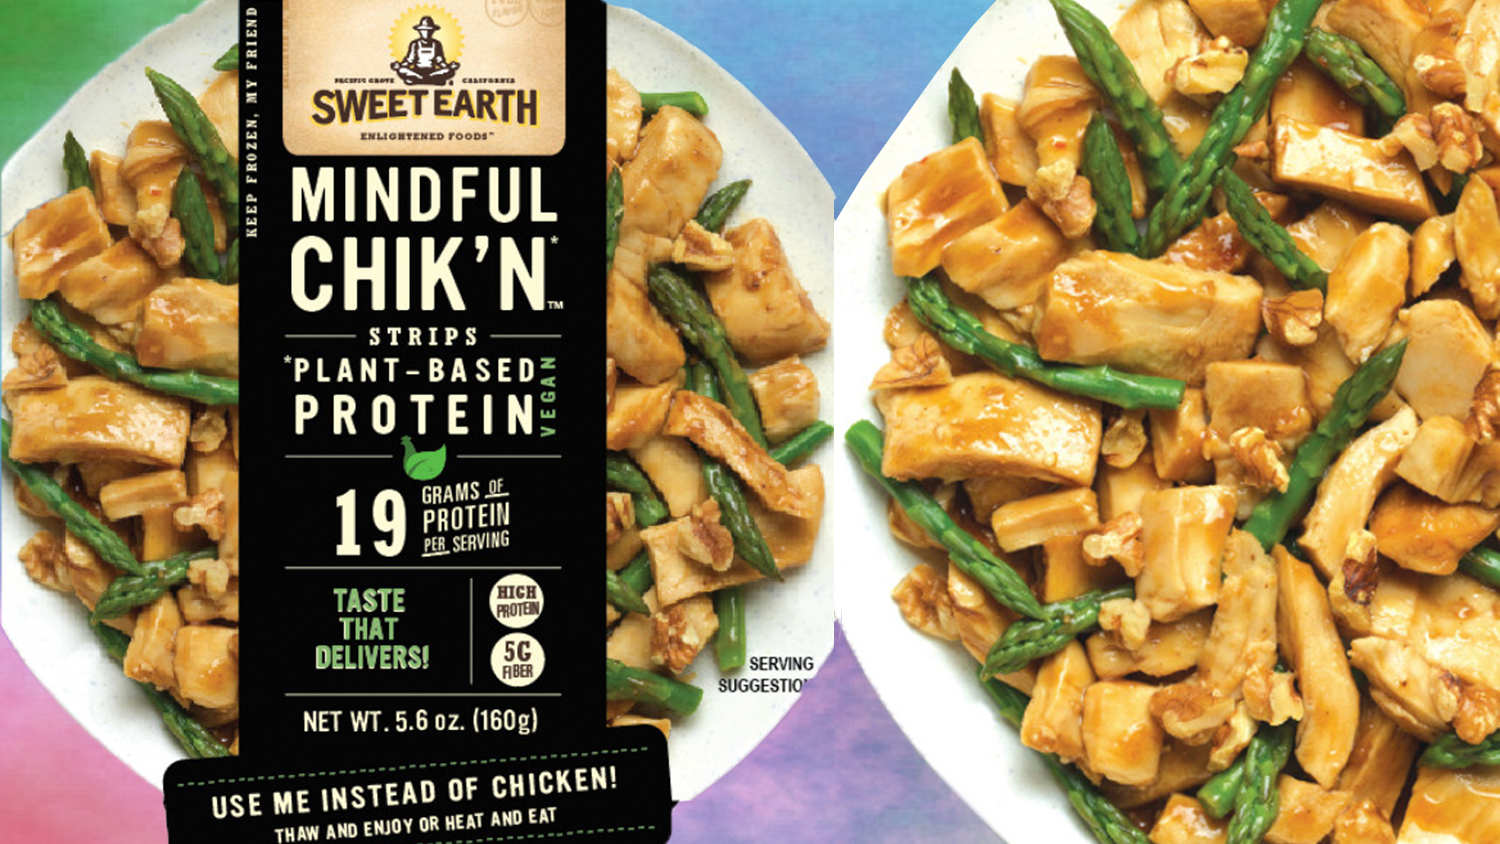 Sweet Earth to Launch Vegan High-Protein 'Mindful' Chicken Range